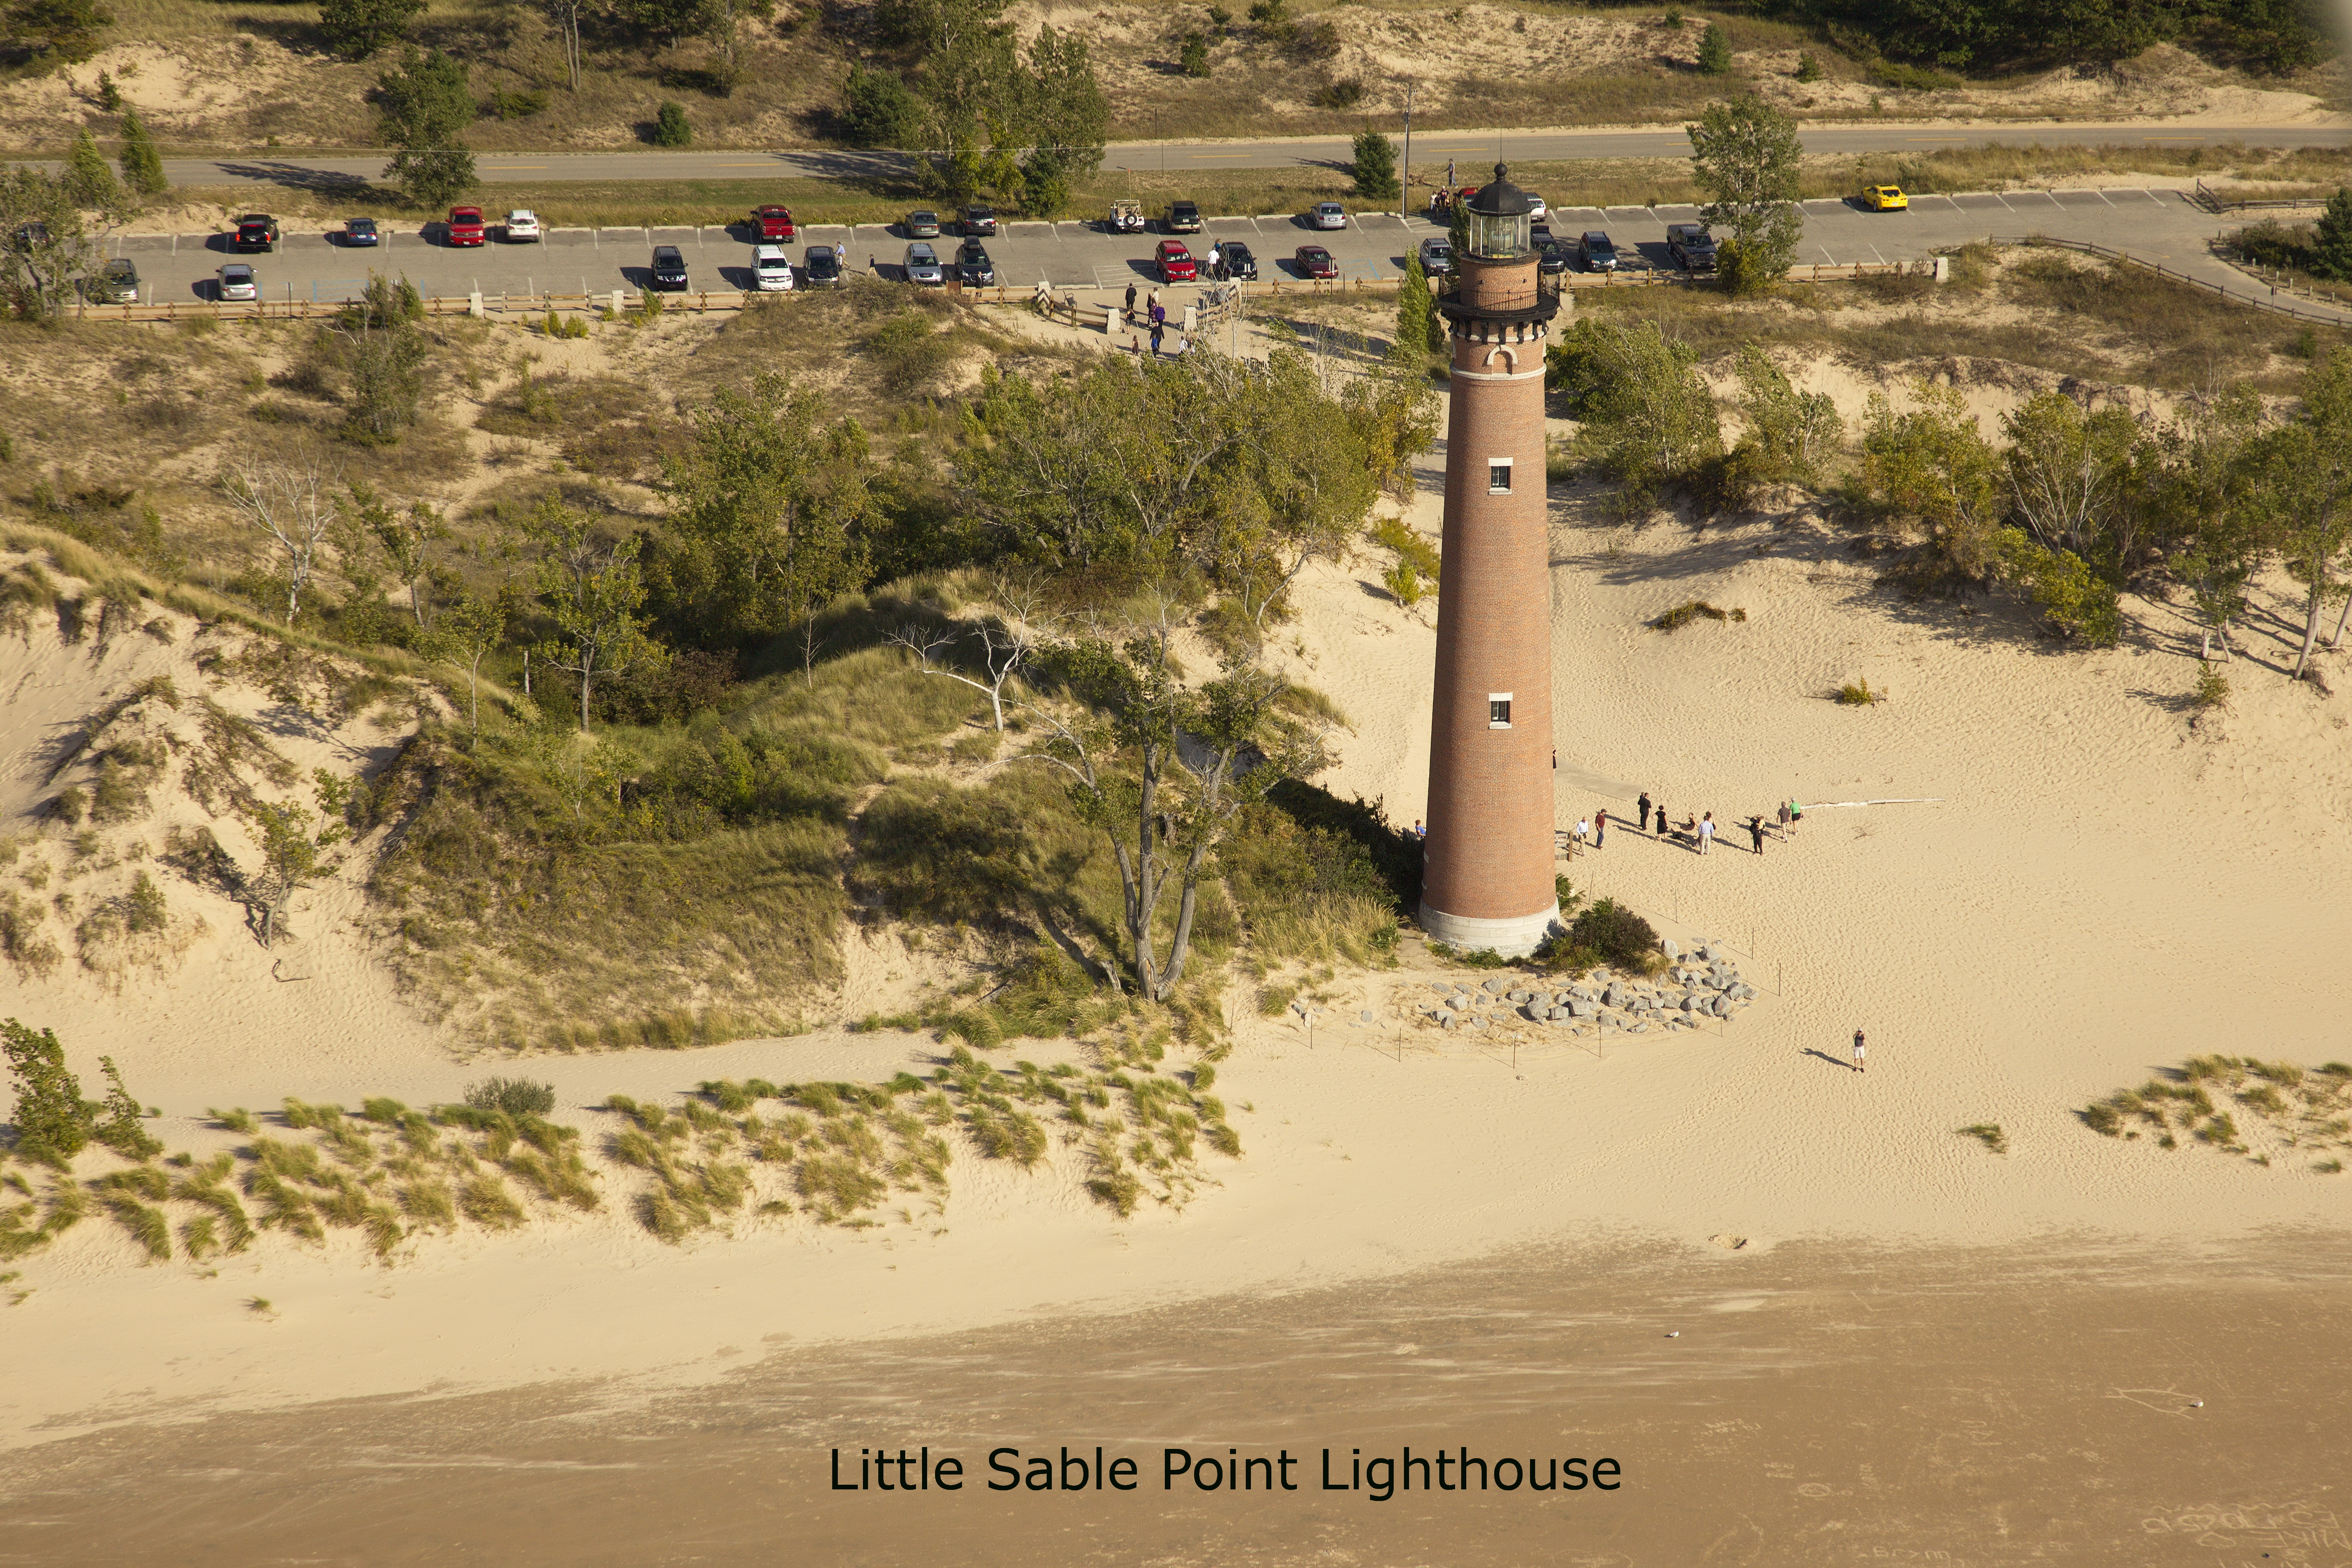 Little Sable Point Lighthouse